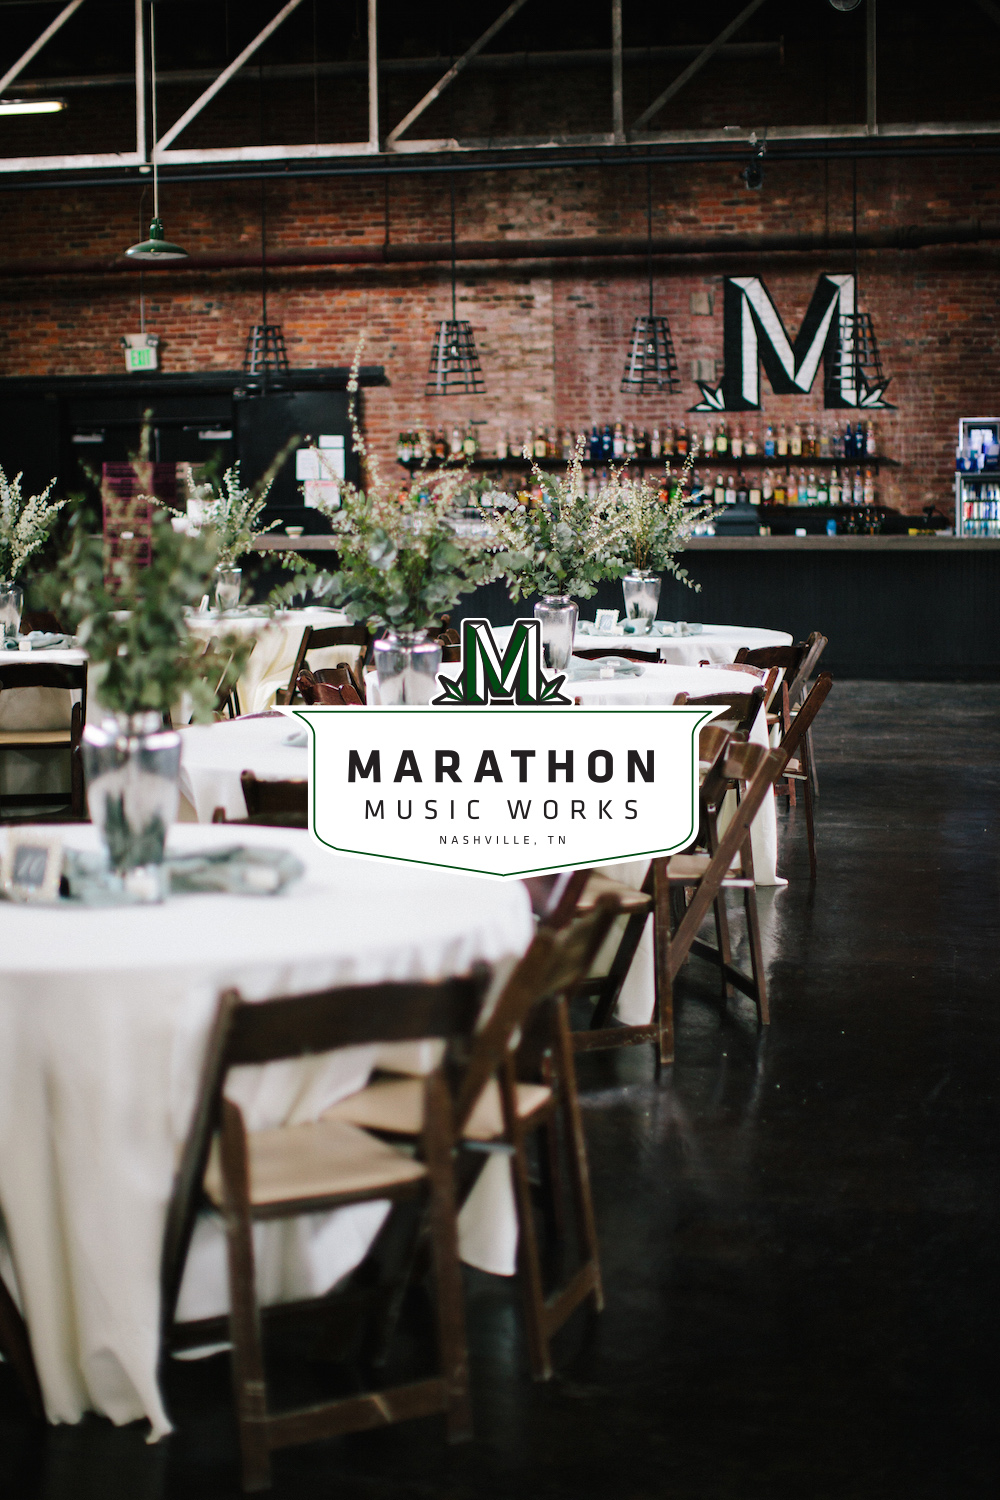 Click  to see more pictures of the Marathon Music Works event space